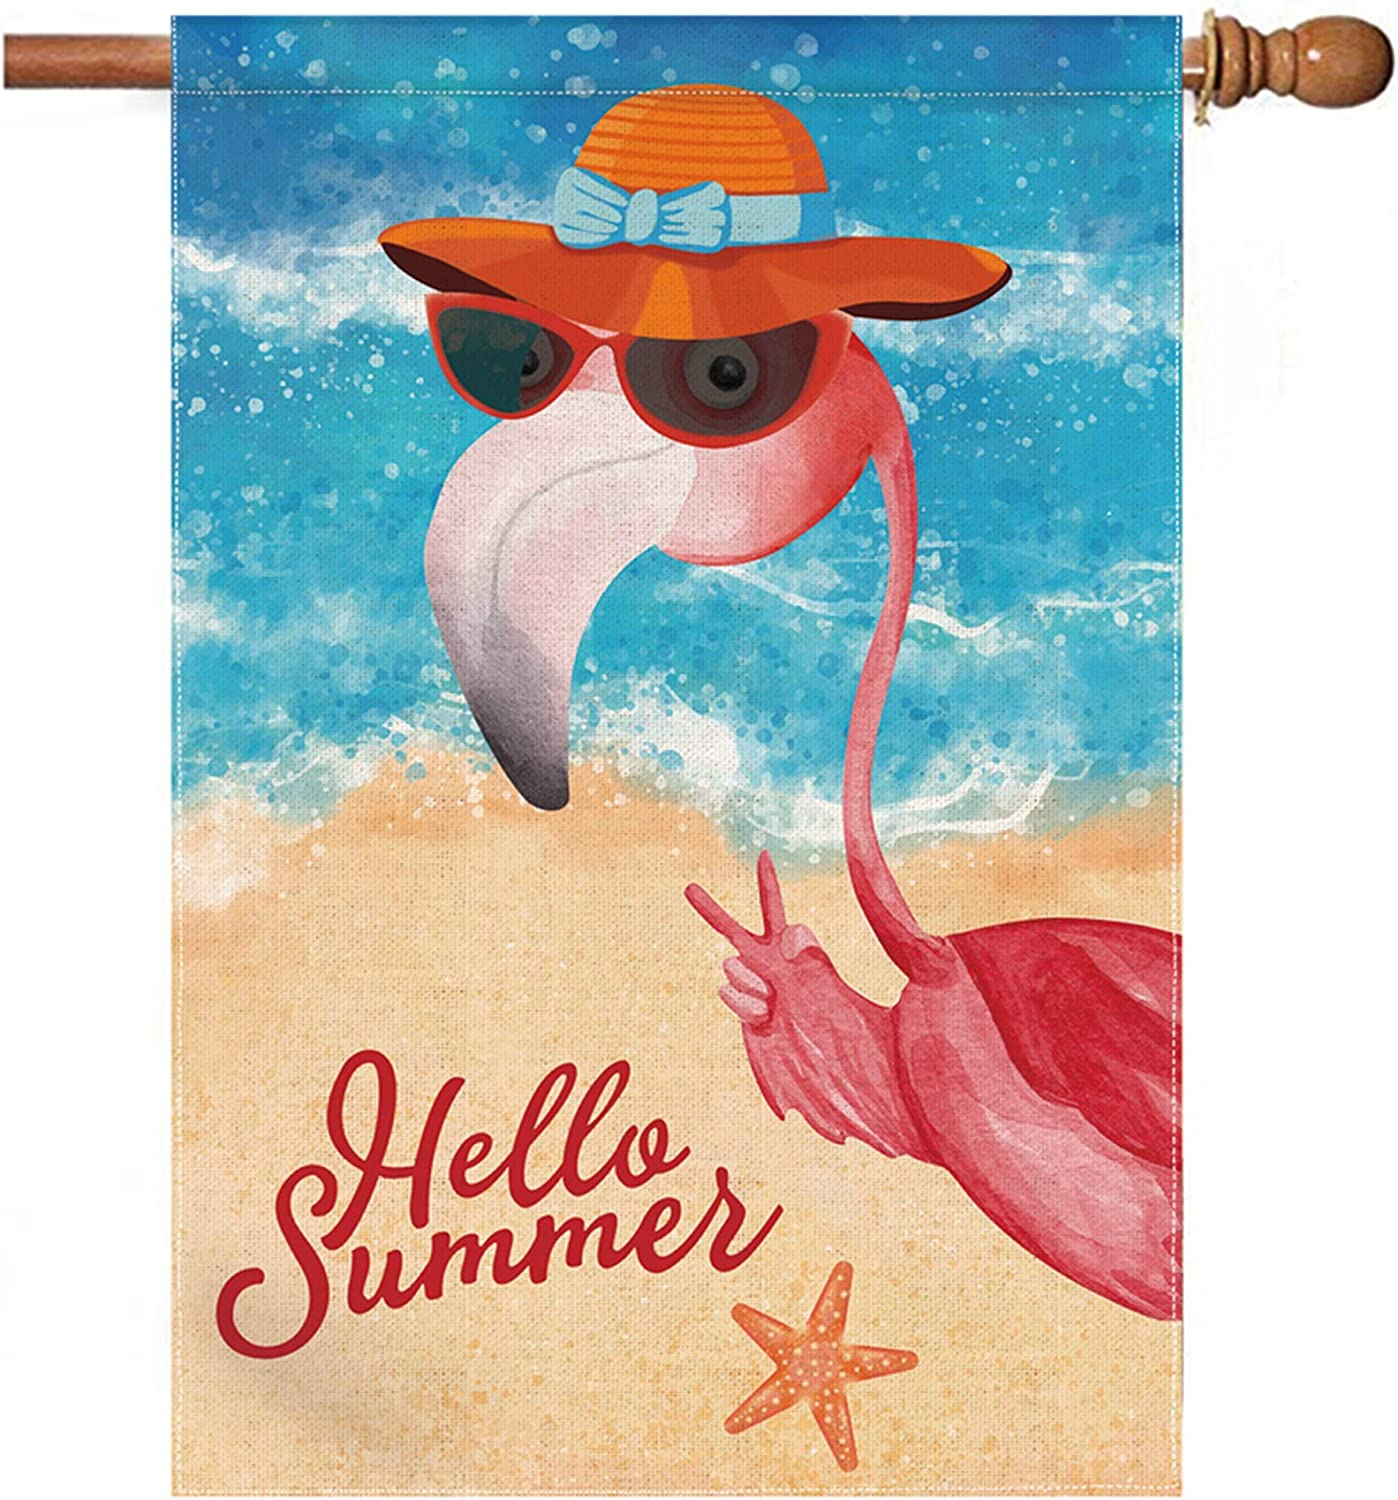 pinata Cool Hello Summer Flamingo Flags 28 x 40 Double Sided, Funny Welcome Large Garden Flags Summer Yard Flag Beach Pink Flamingo Decor Gifts, Seasonal Burlap Outdoor House Flag